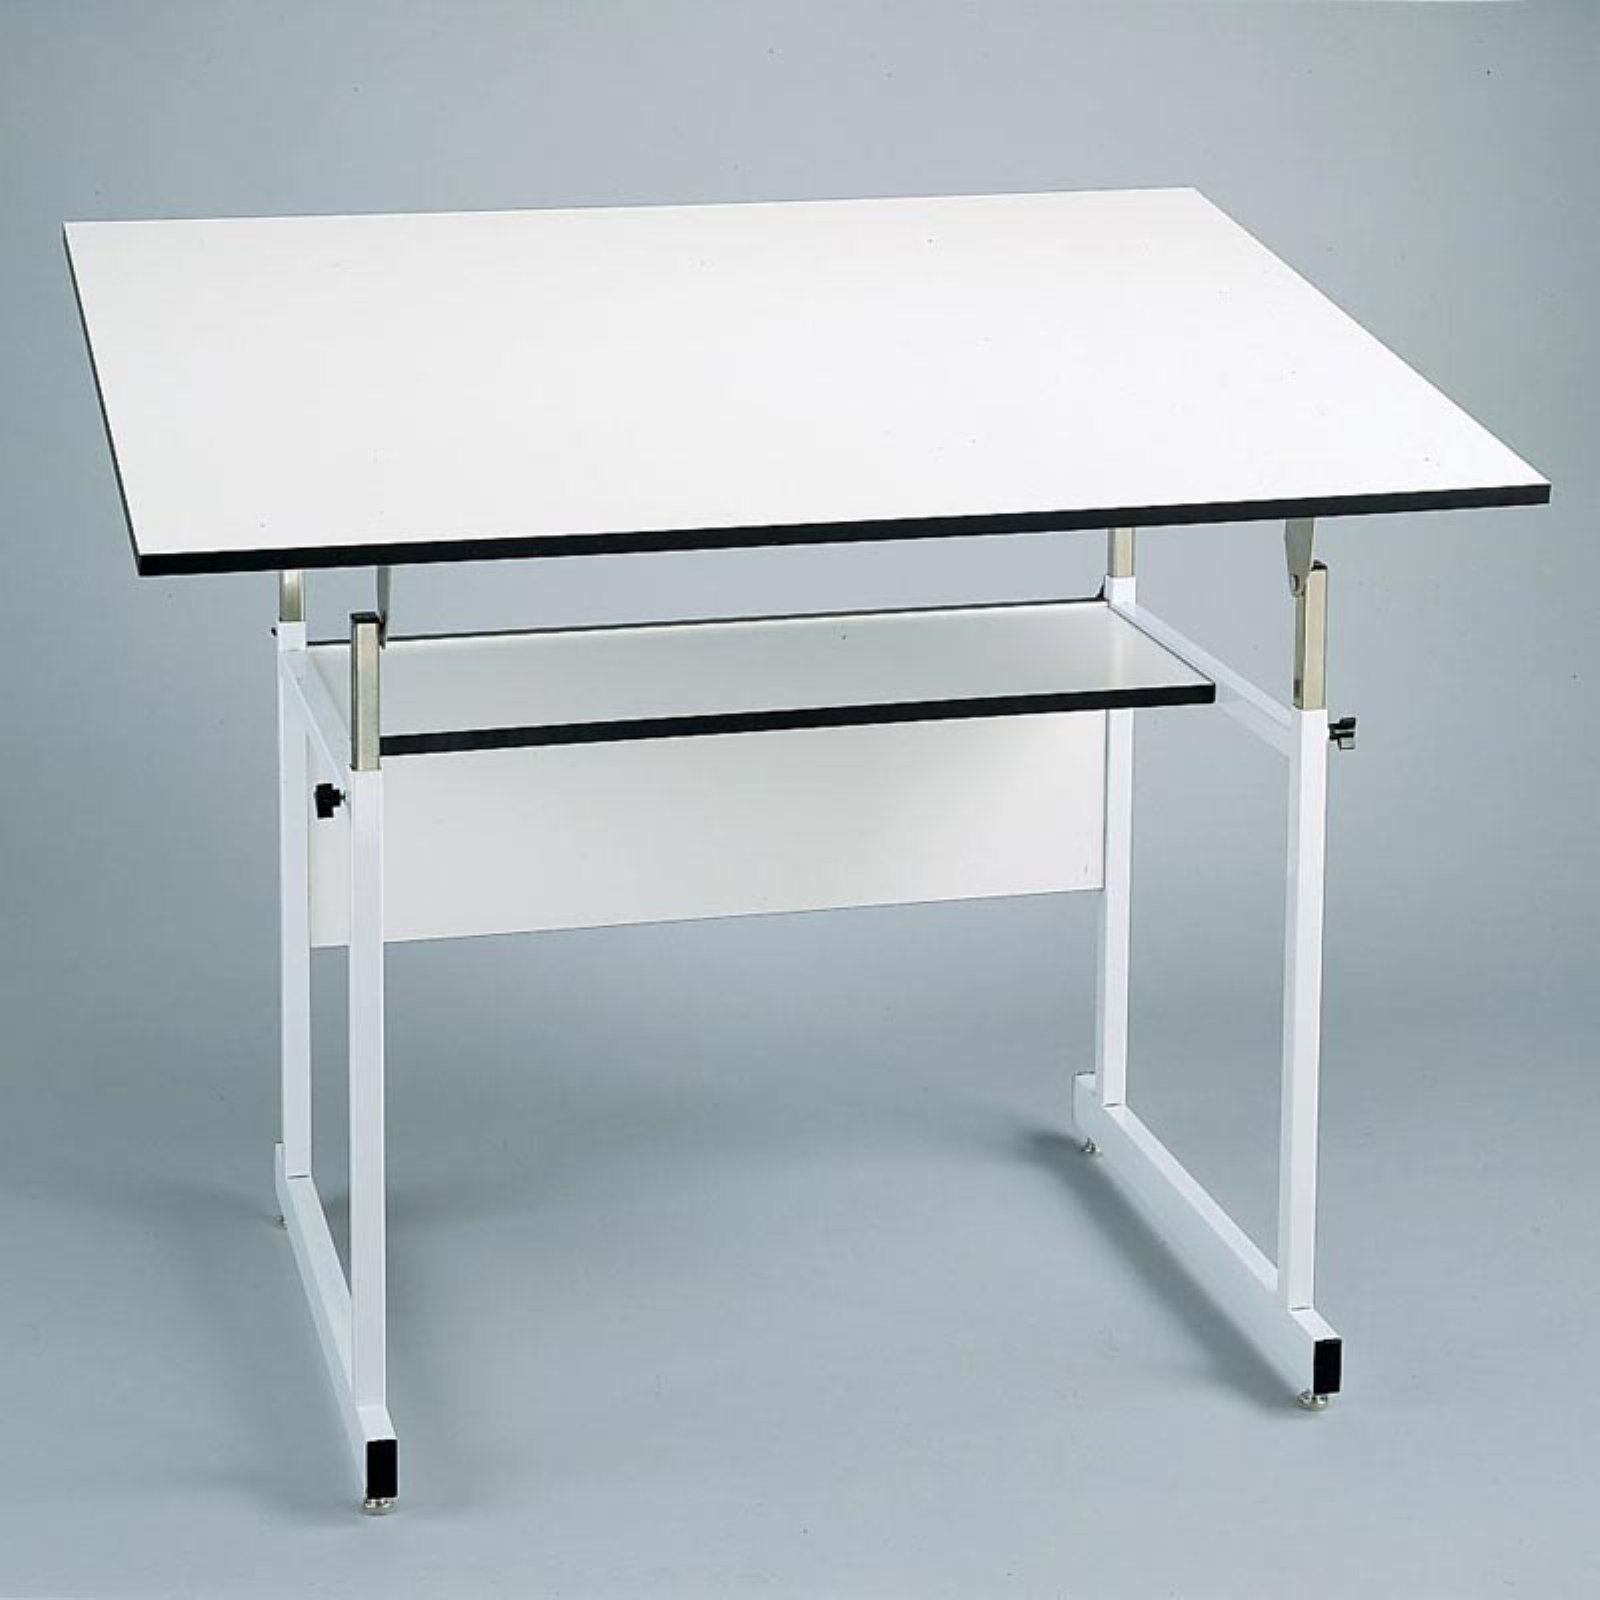 alvin workmaster jr adjustable drafting table - Drafting Tables